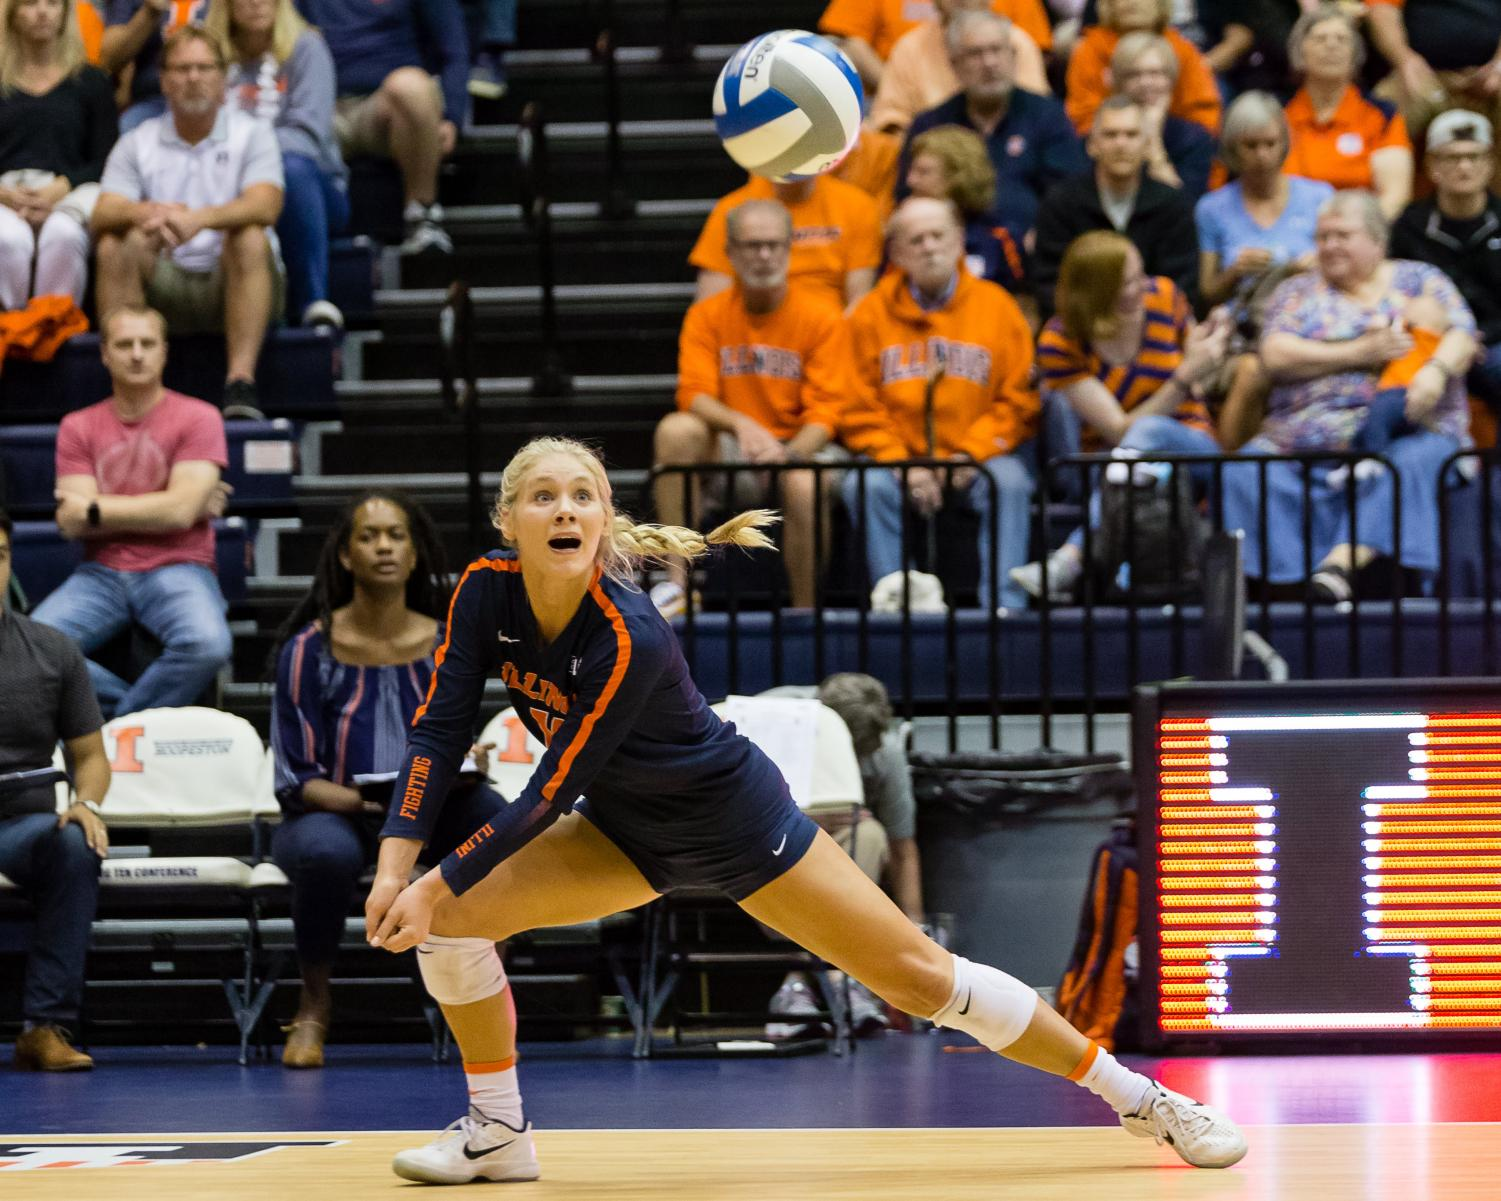 Illinois defensive specialist Morgan O'Brien gets ready to dig the ball during the match against Iowa at Huff Hall on Sept. 28. The Illini won 3-0.